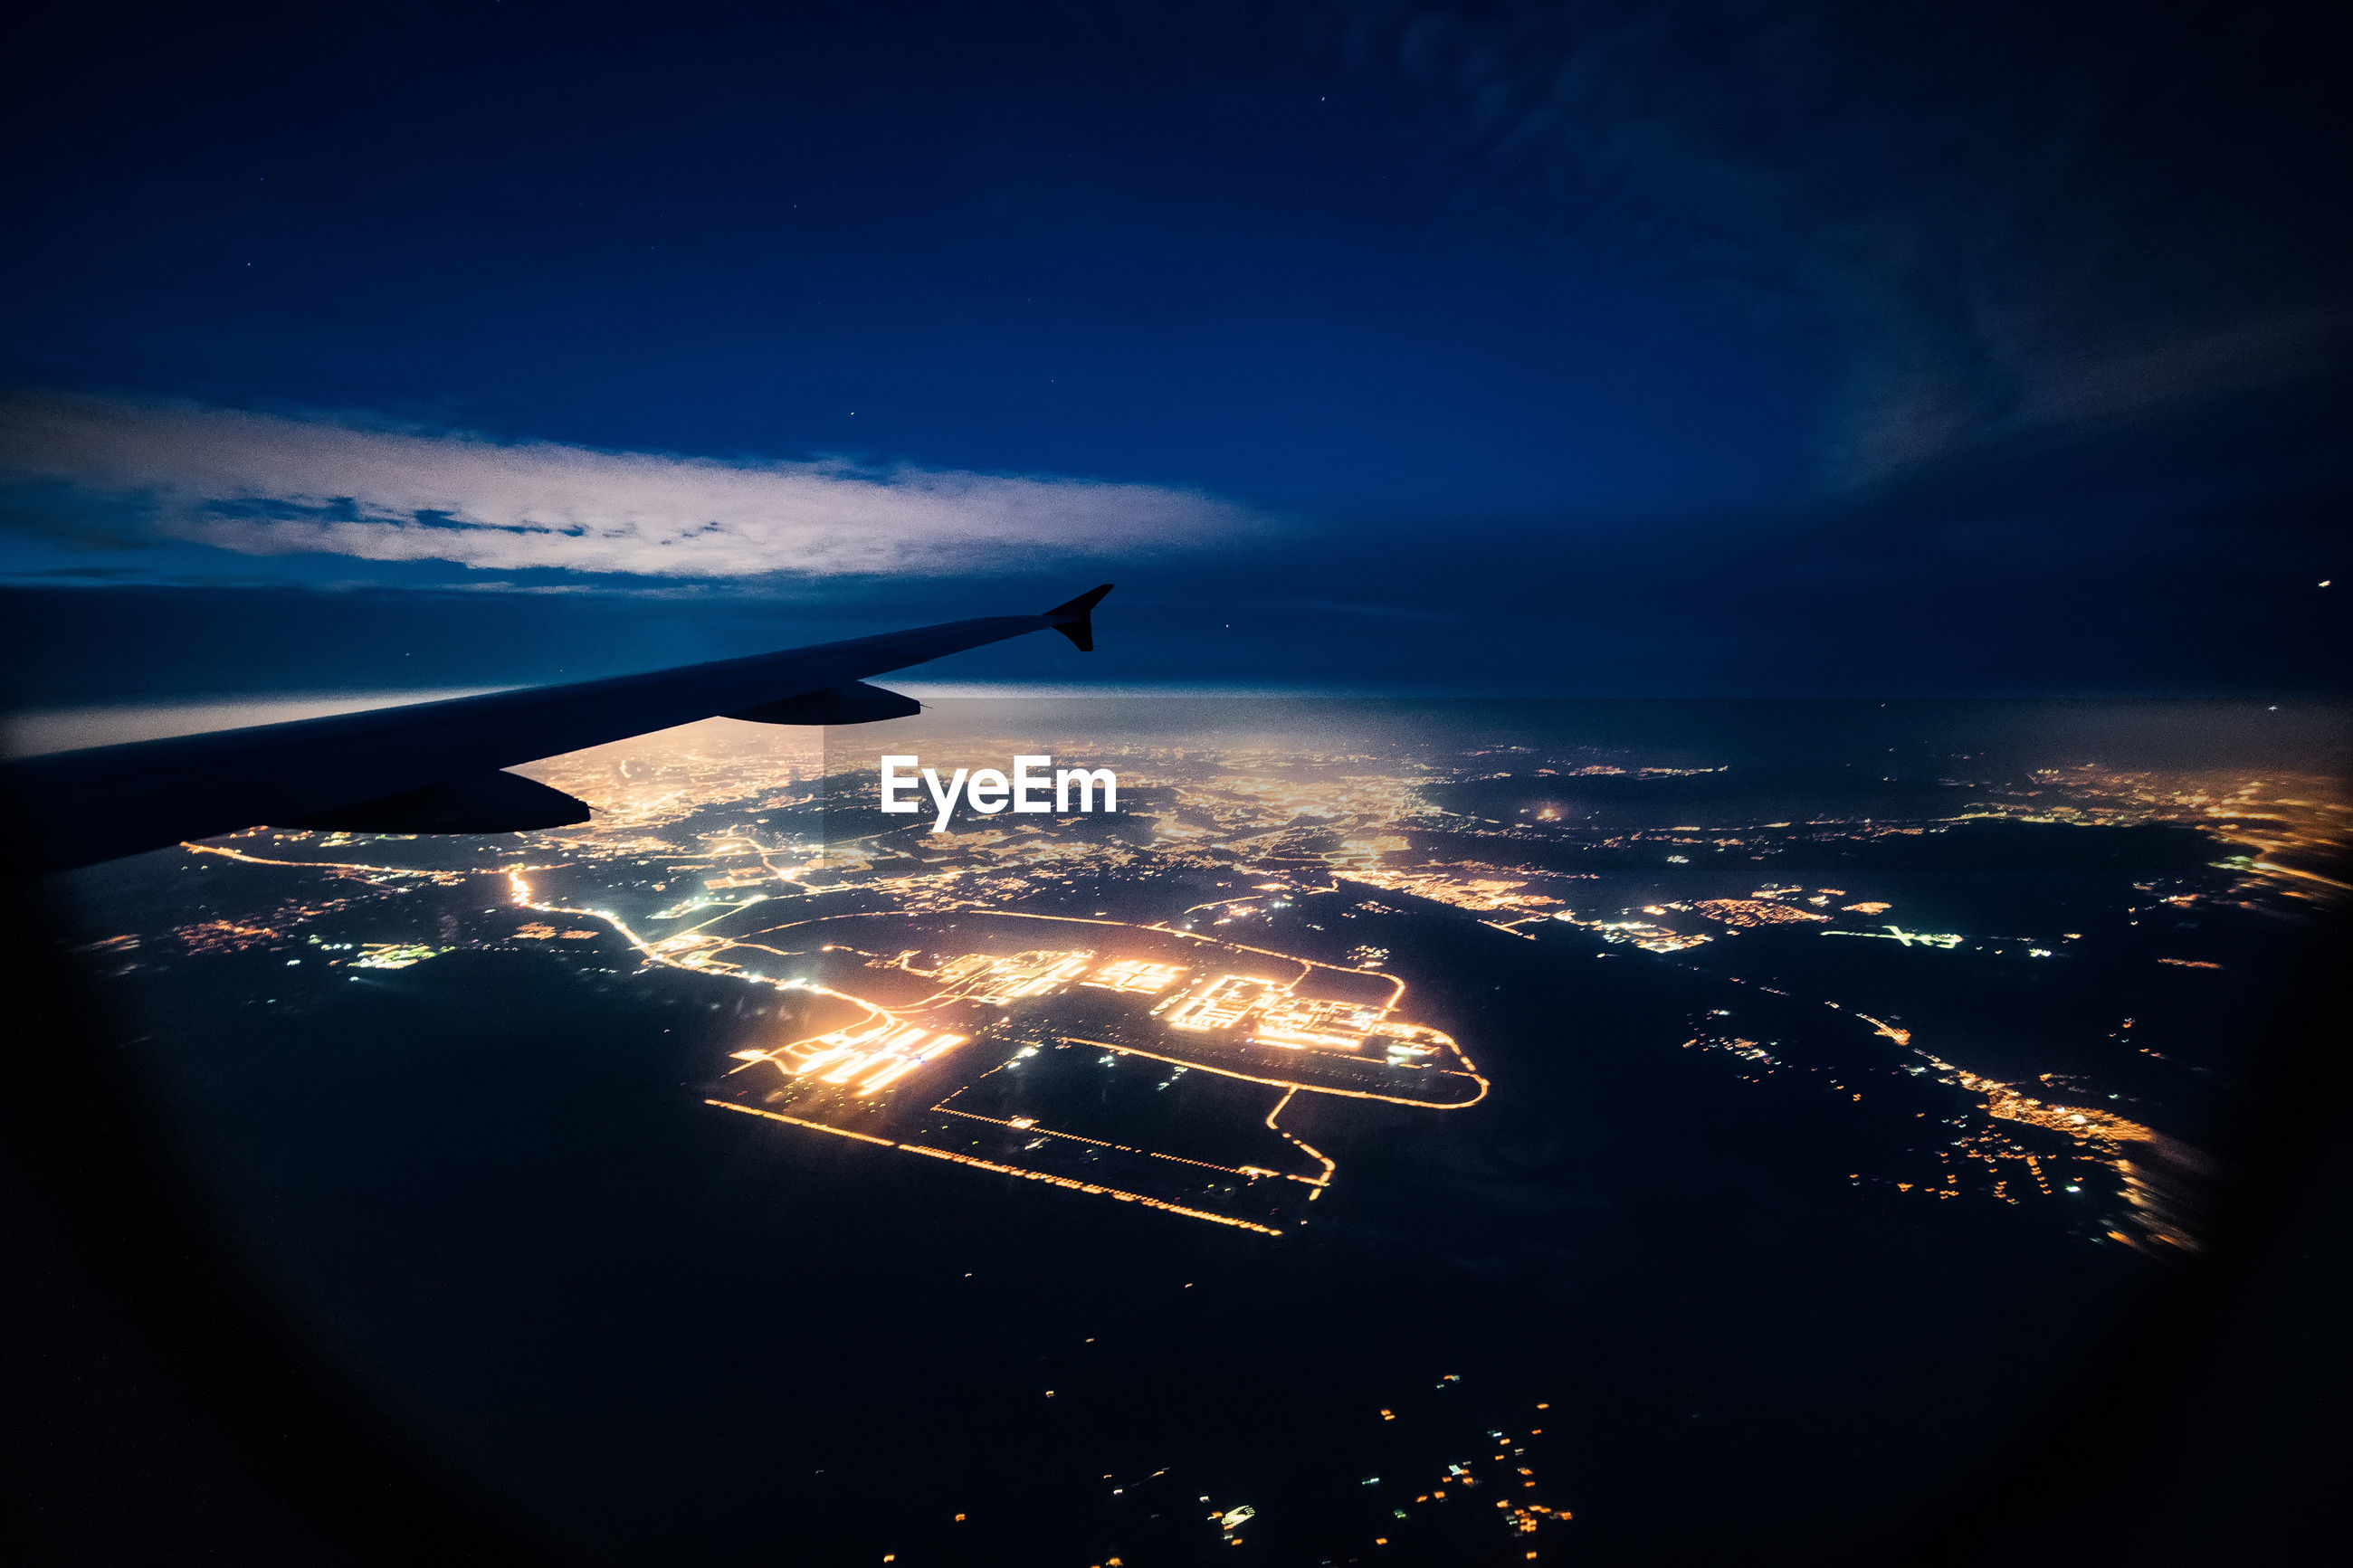 Aerial view of illuminated city against sky at night seen through airplane window